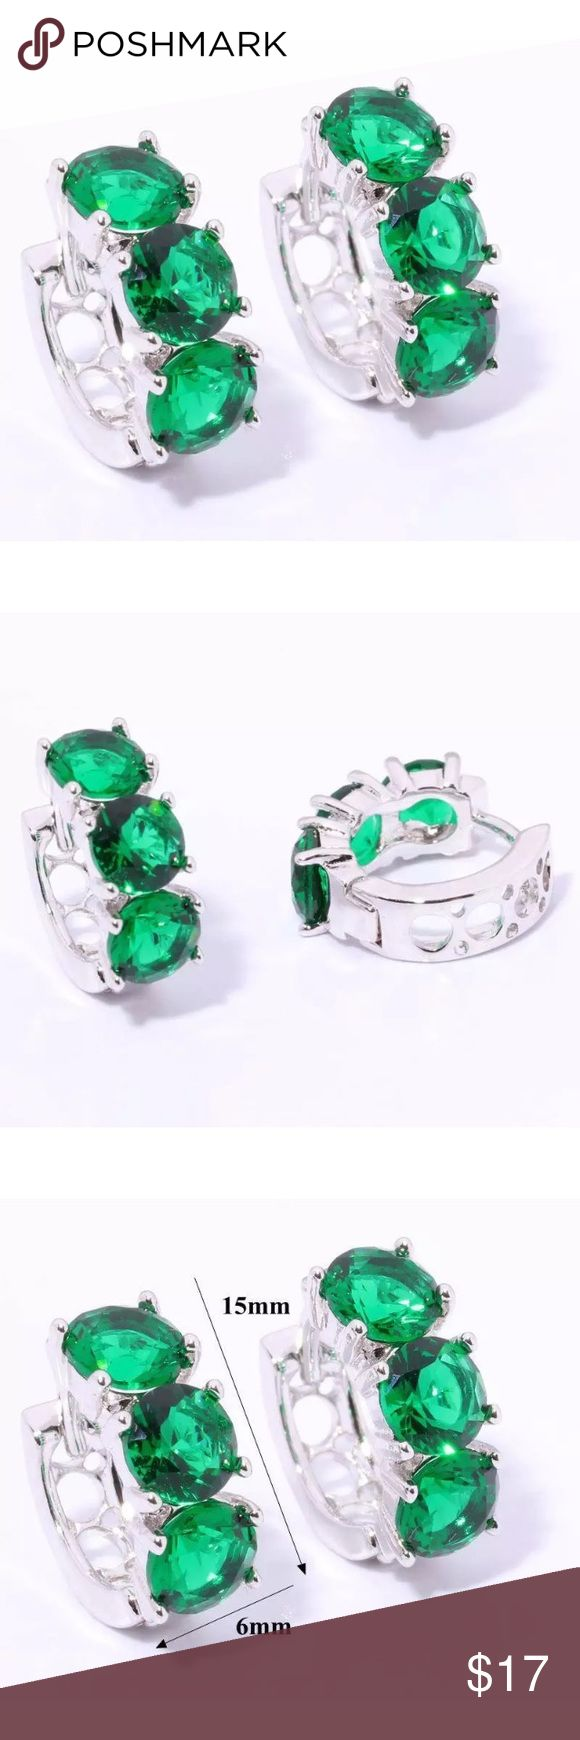 Green Quartz & Silver Filled Huggie Earrings Green Quartz and silver filled huggie earrings. Gemstones are 5mm in diameter, 3 stones per earring. Earrings are 15mm in length. Please see photo #5 for information concerning silver filled vs. silver plated. Boutique Jewelry Earrings